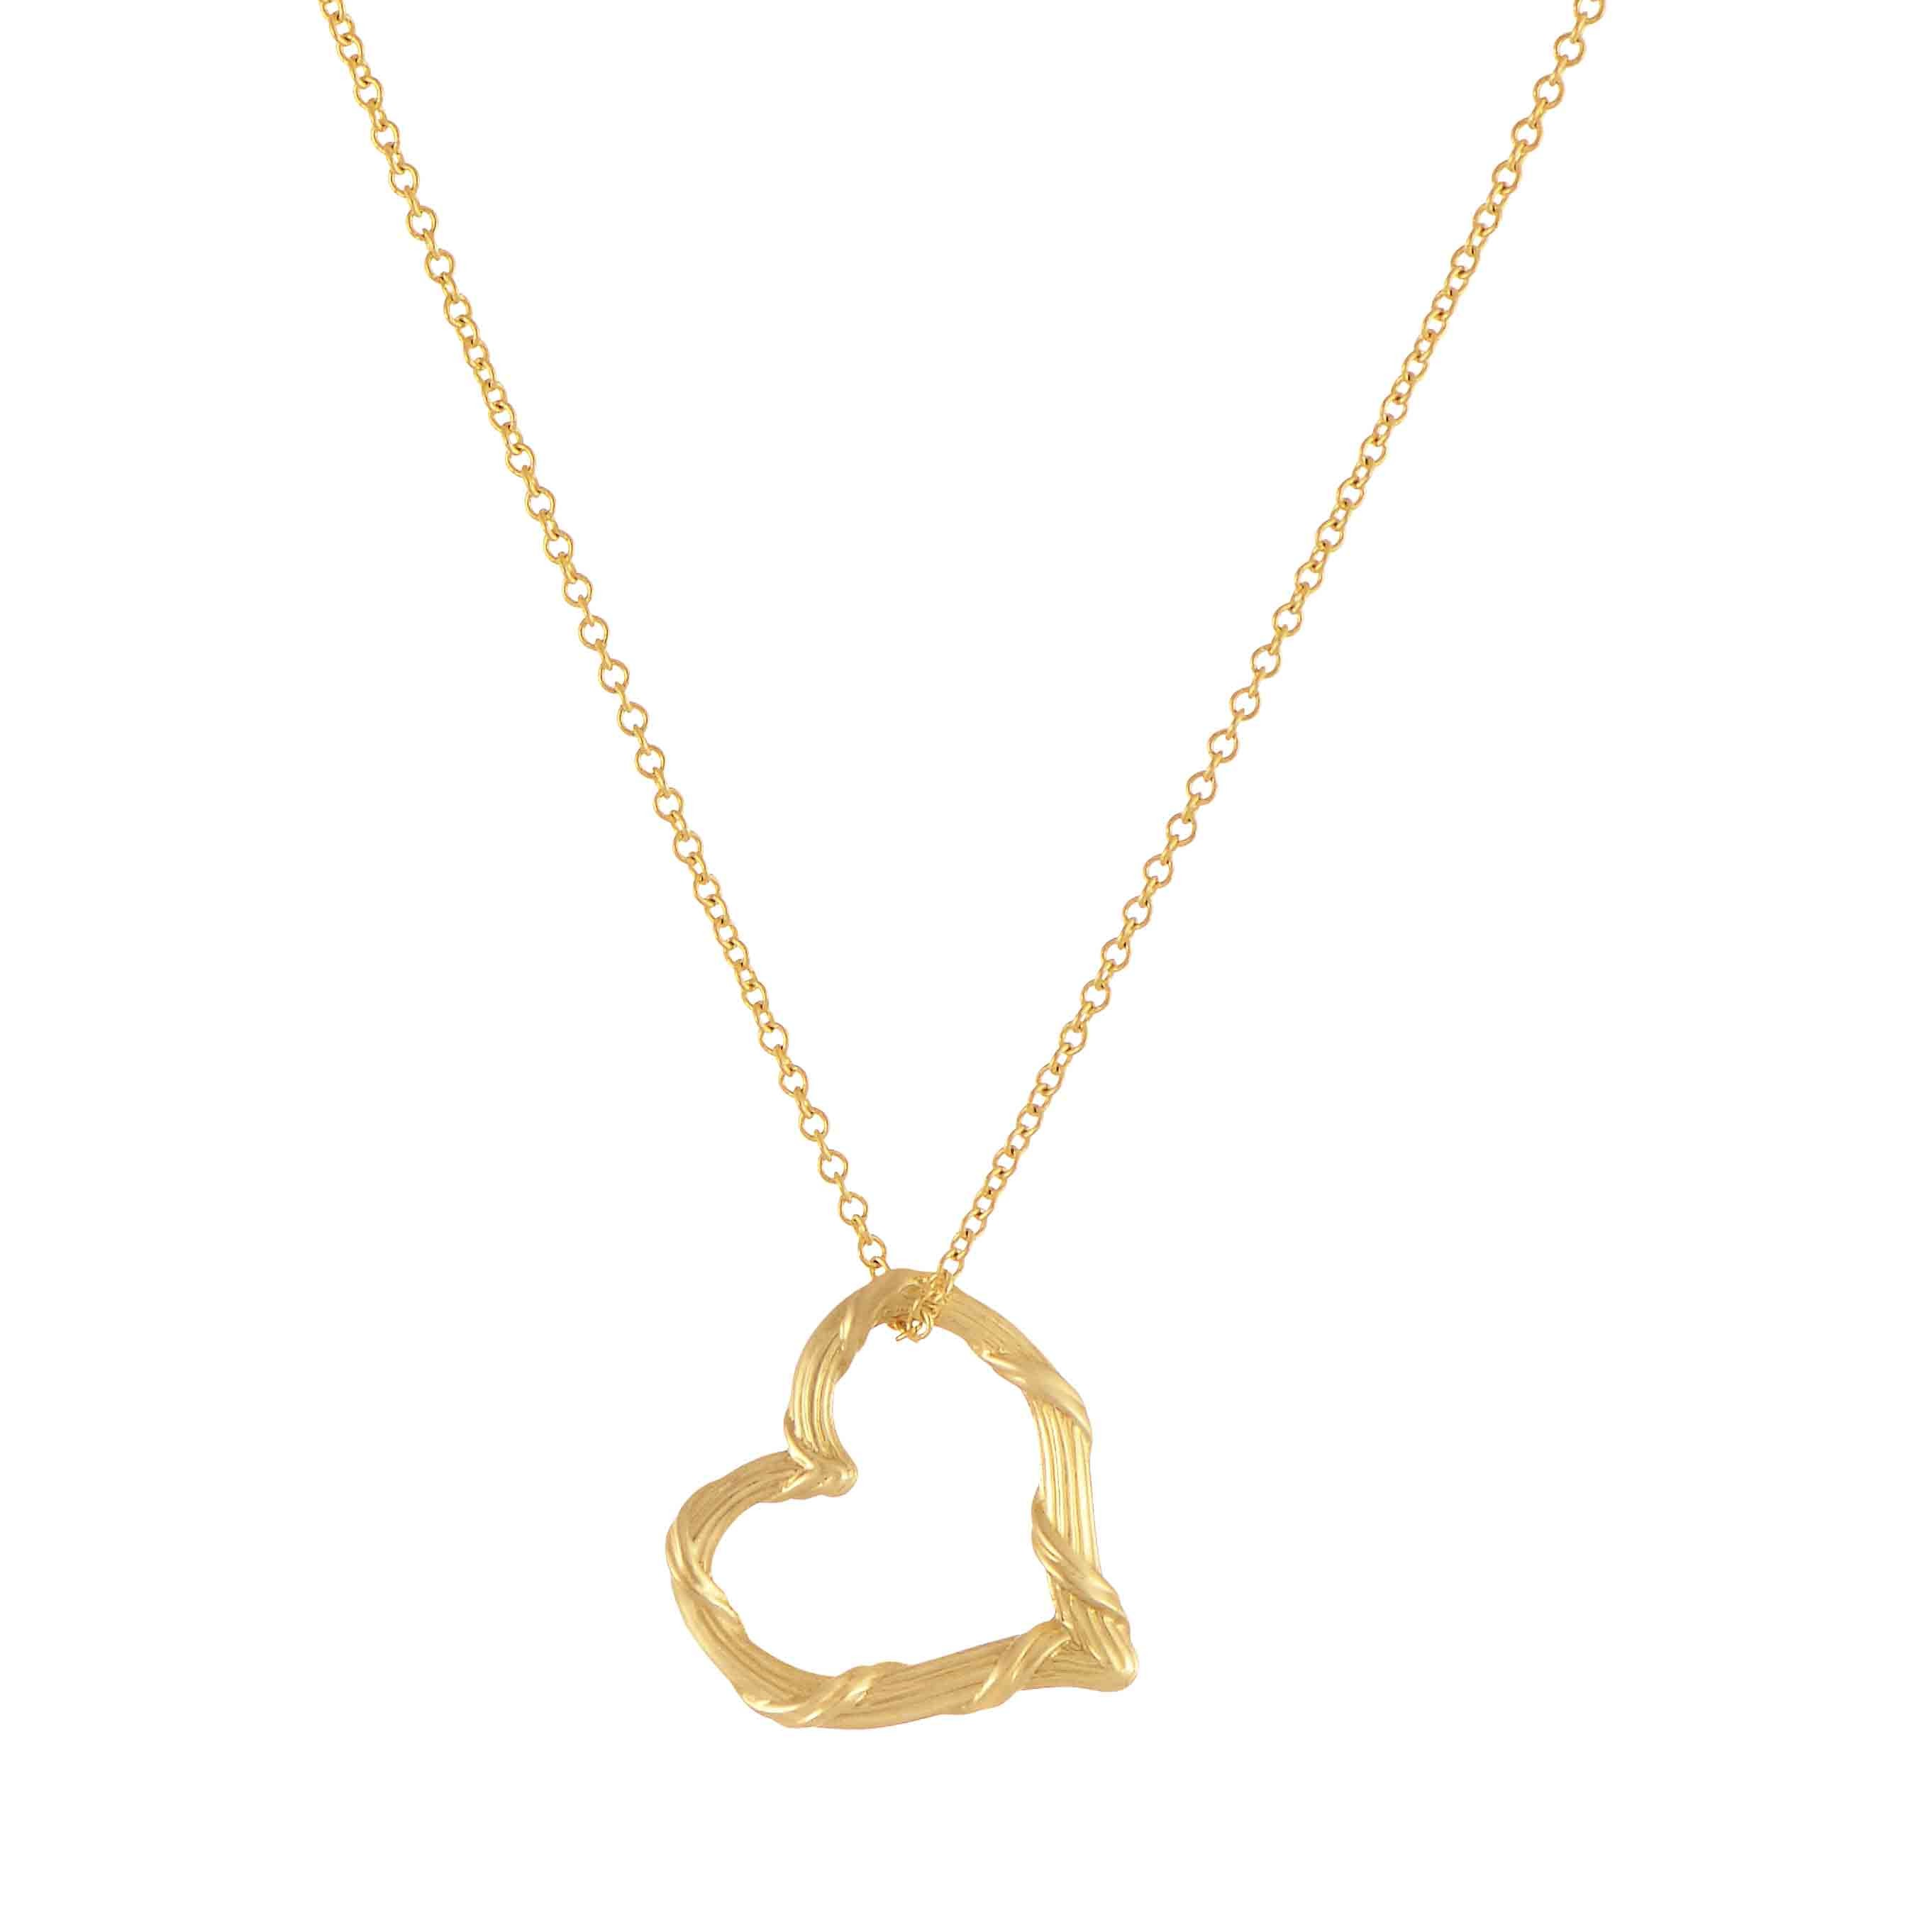 pave london us hires essentials of diamond mini necklace amp sterling en links and heart silver